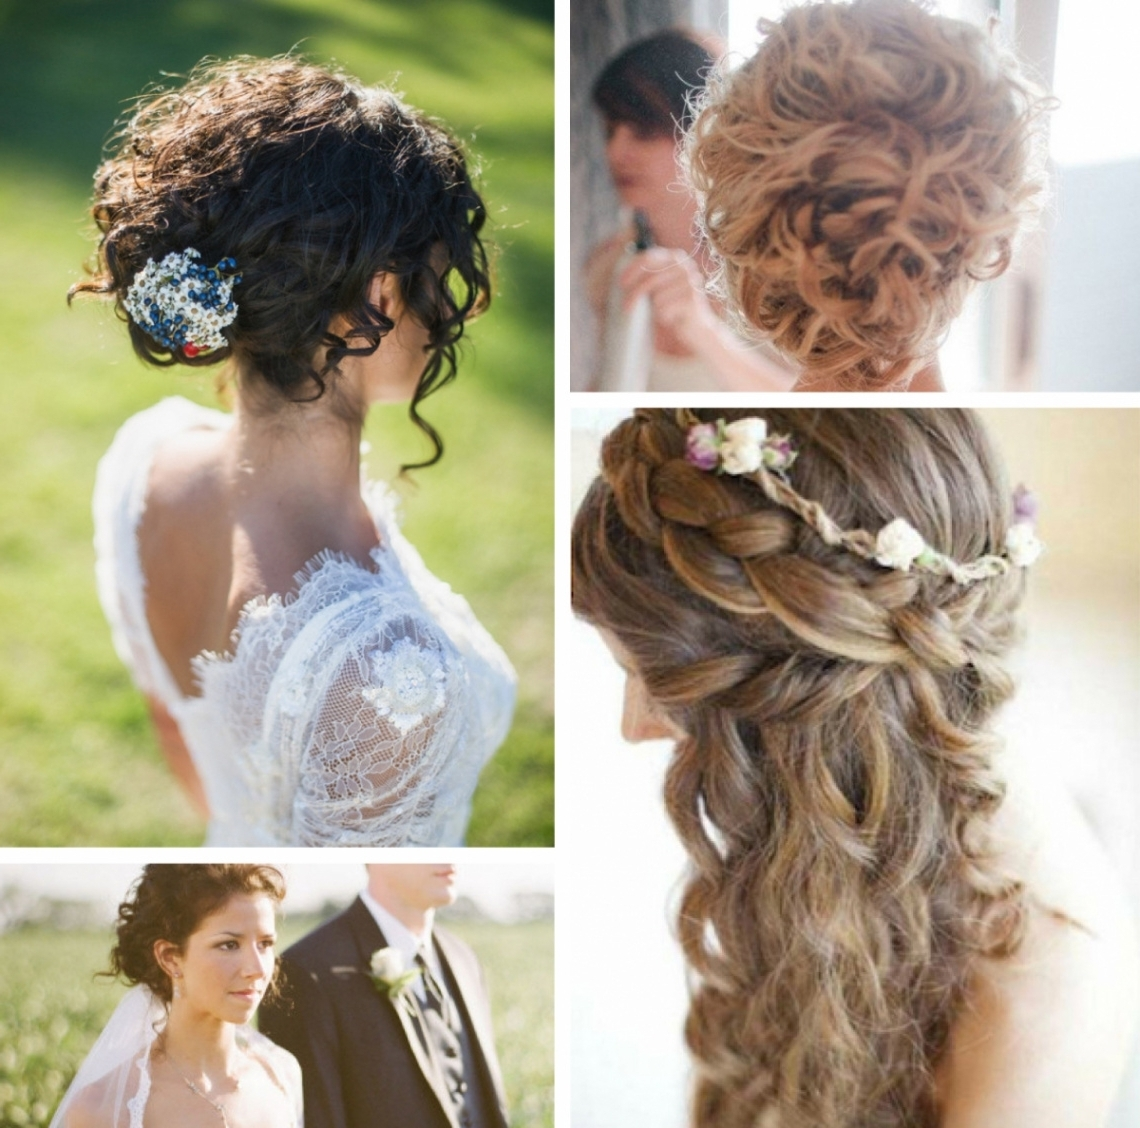 Bridal Hairstyles For Curly Hair | Trend Hairstyle And Haircut Ideas Intended For Bridal Updos For Curly Hair (View 7 of 15)